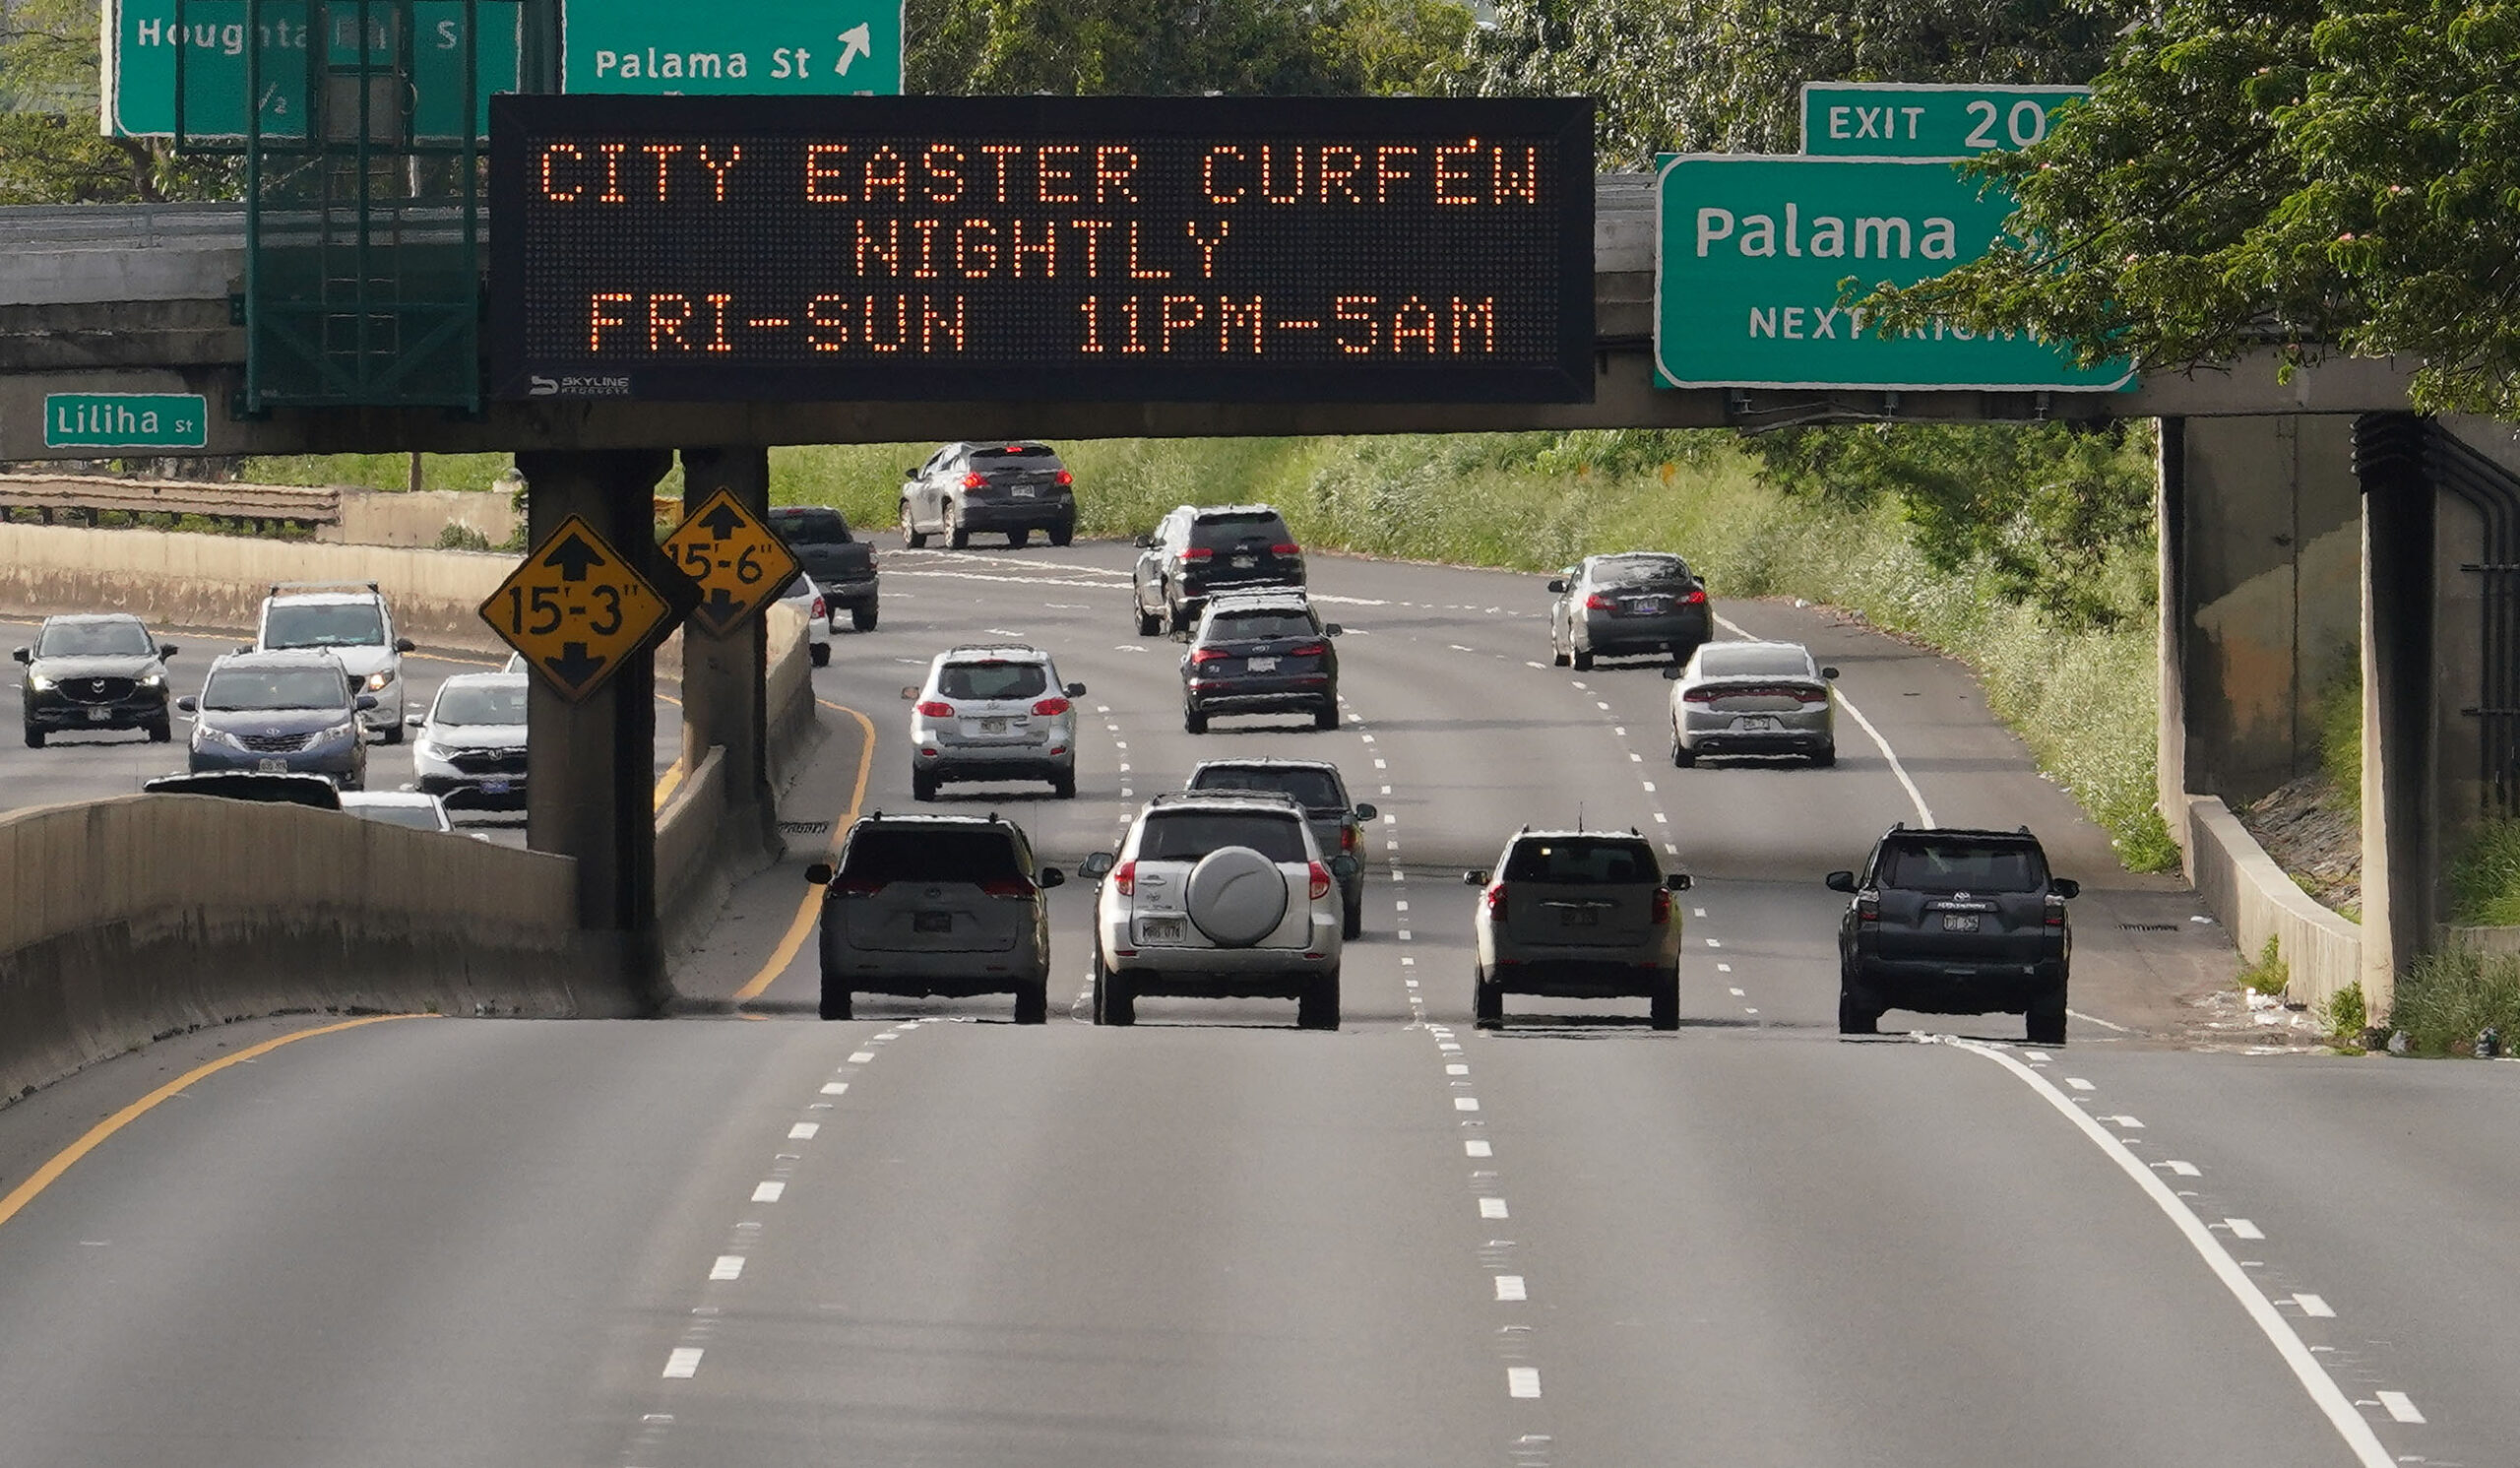 <p>Honolulu Mayor Kirk Caldwell instituted a curfew for Easter weekend due to the pandemic. The rules prohibited people from driving between the hours of 11 p.m. and 5 a.m. to slow the virus' spread.</p>